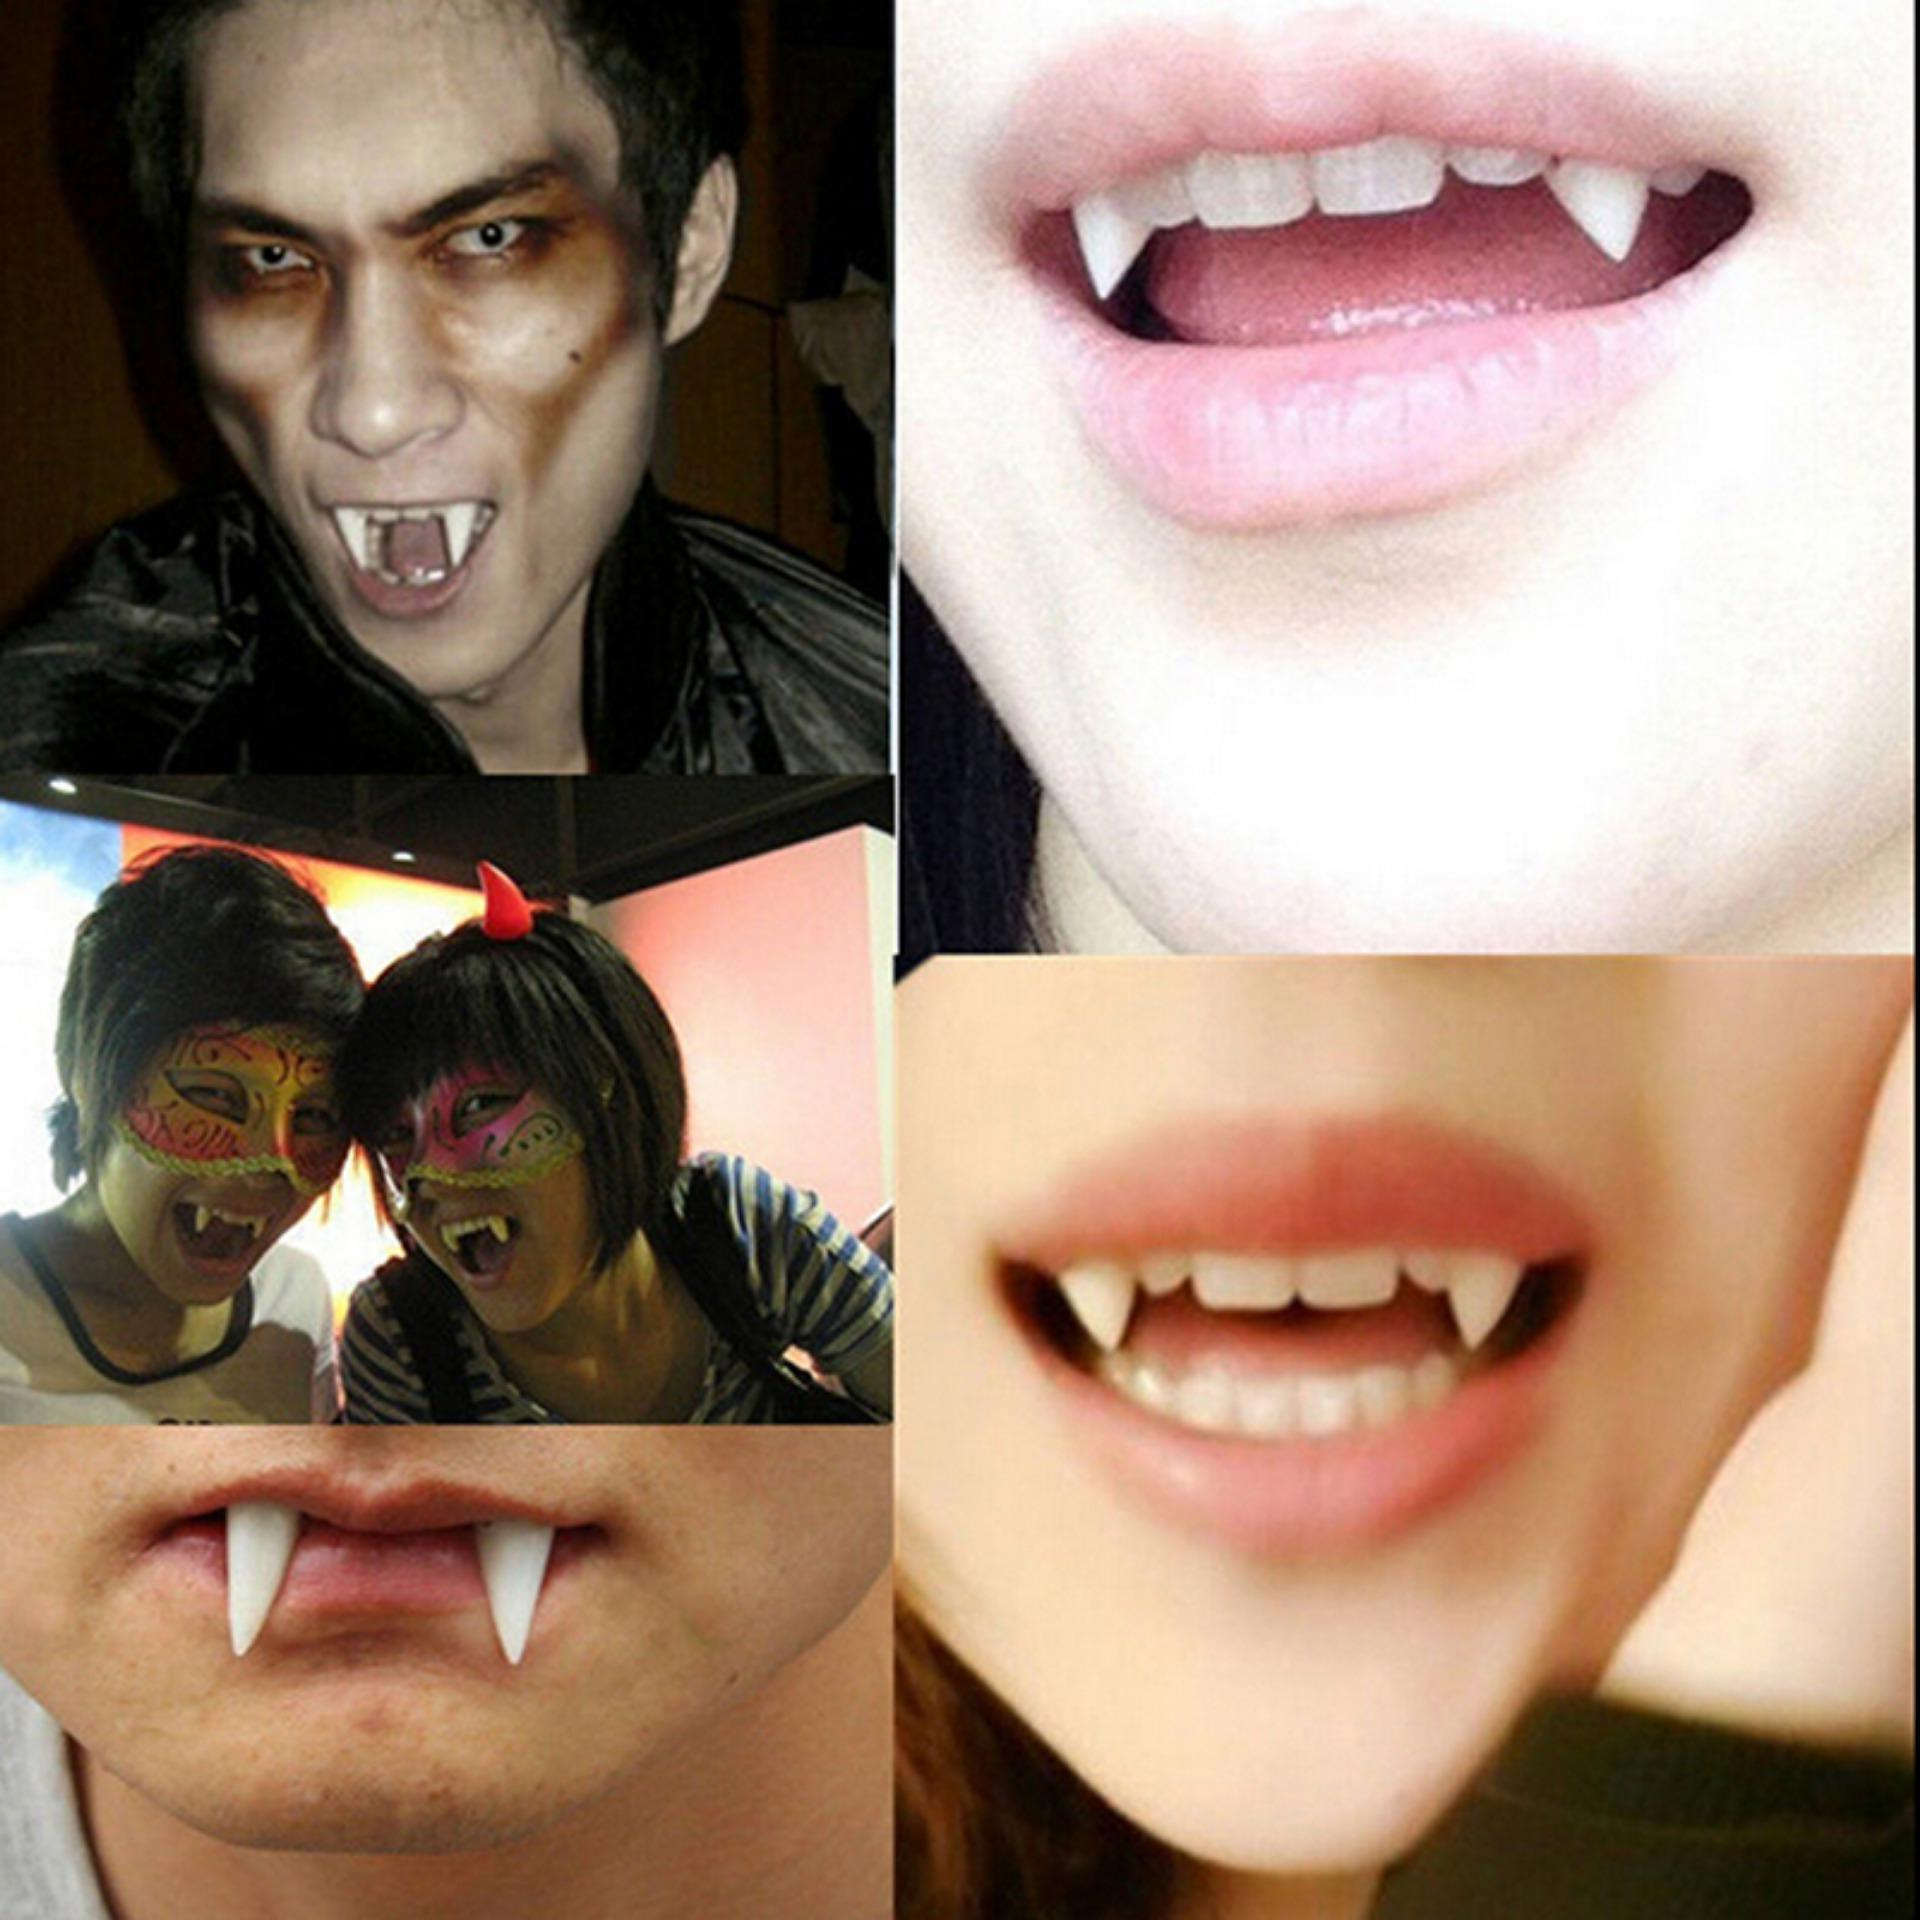 Novelty & Gag Toys 2pcs Halloween Horrific Cosplay Dentures Zombie Cosplay Teeth Ghost Devil Fangs Props Costume Party